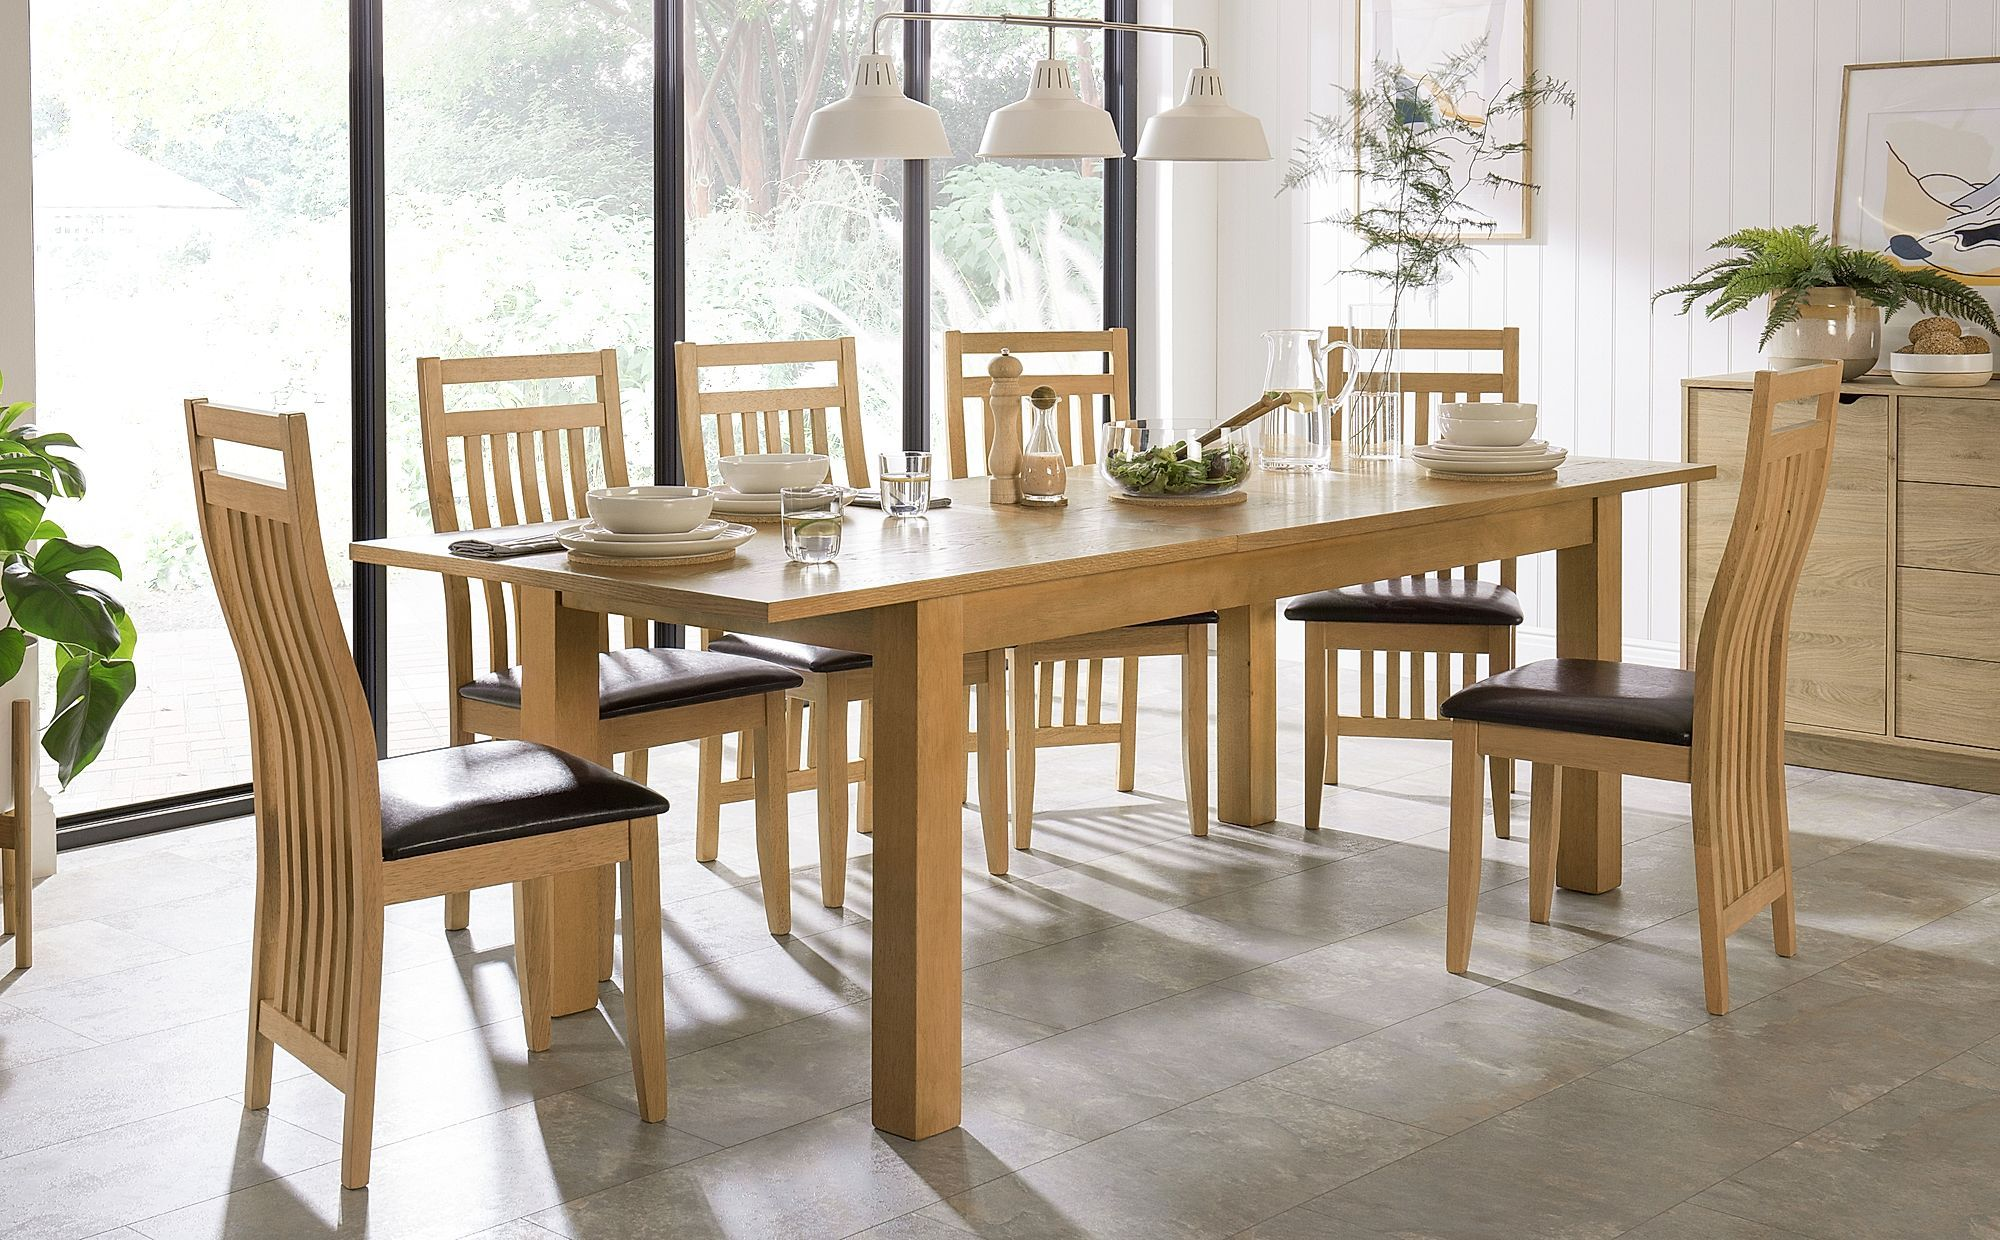 Hamilton Oak 180 230cm Extending Dining Table With 6 Bali Chairs